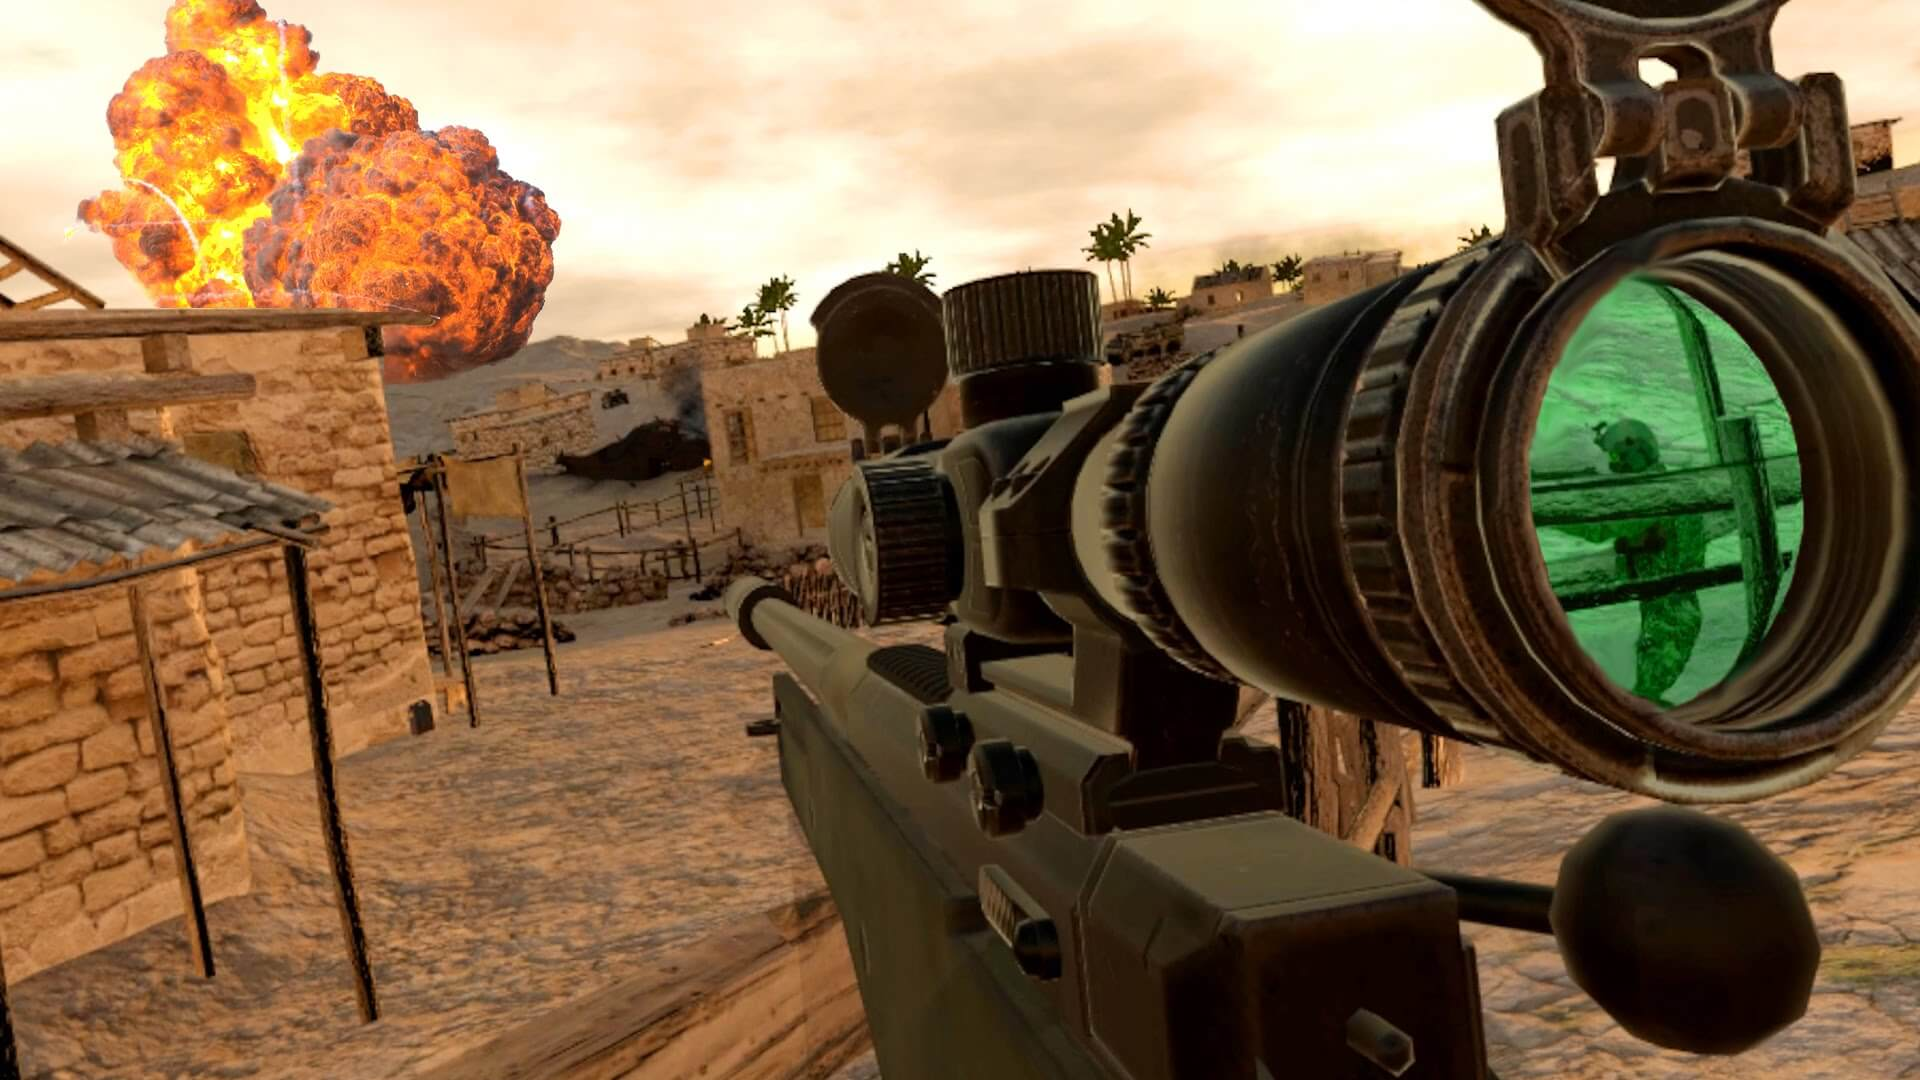 Top 5 Multiplayer VR FPS Games to Make You Sweat